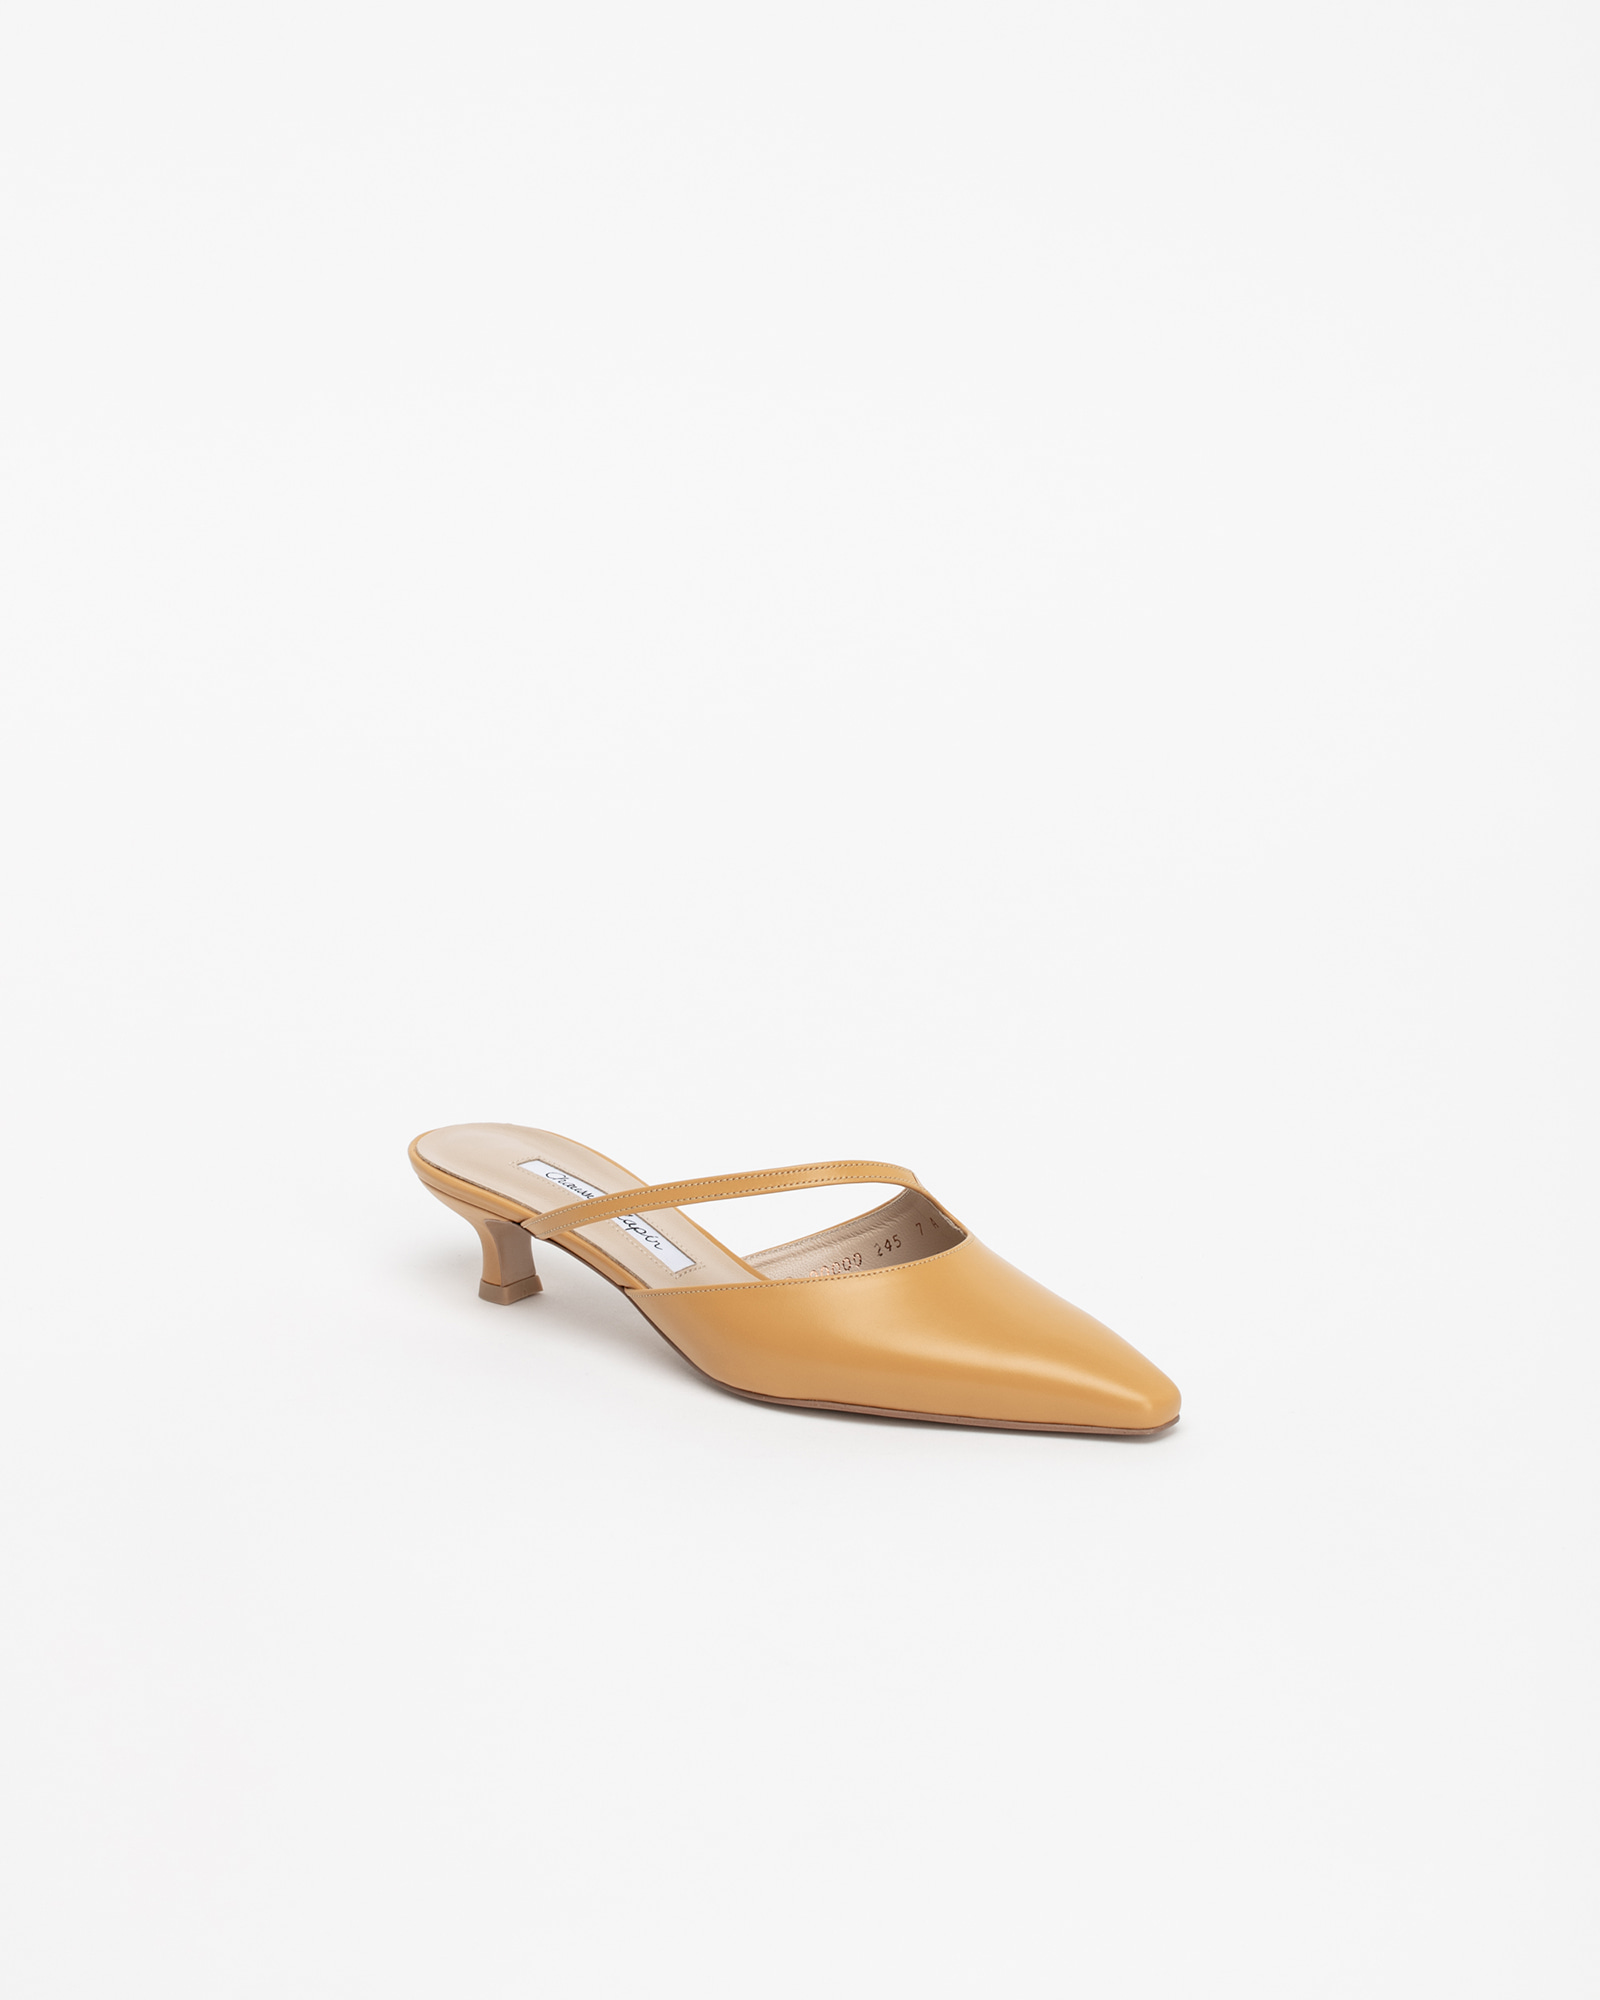 Serenade Mules in Fever Yellow